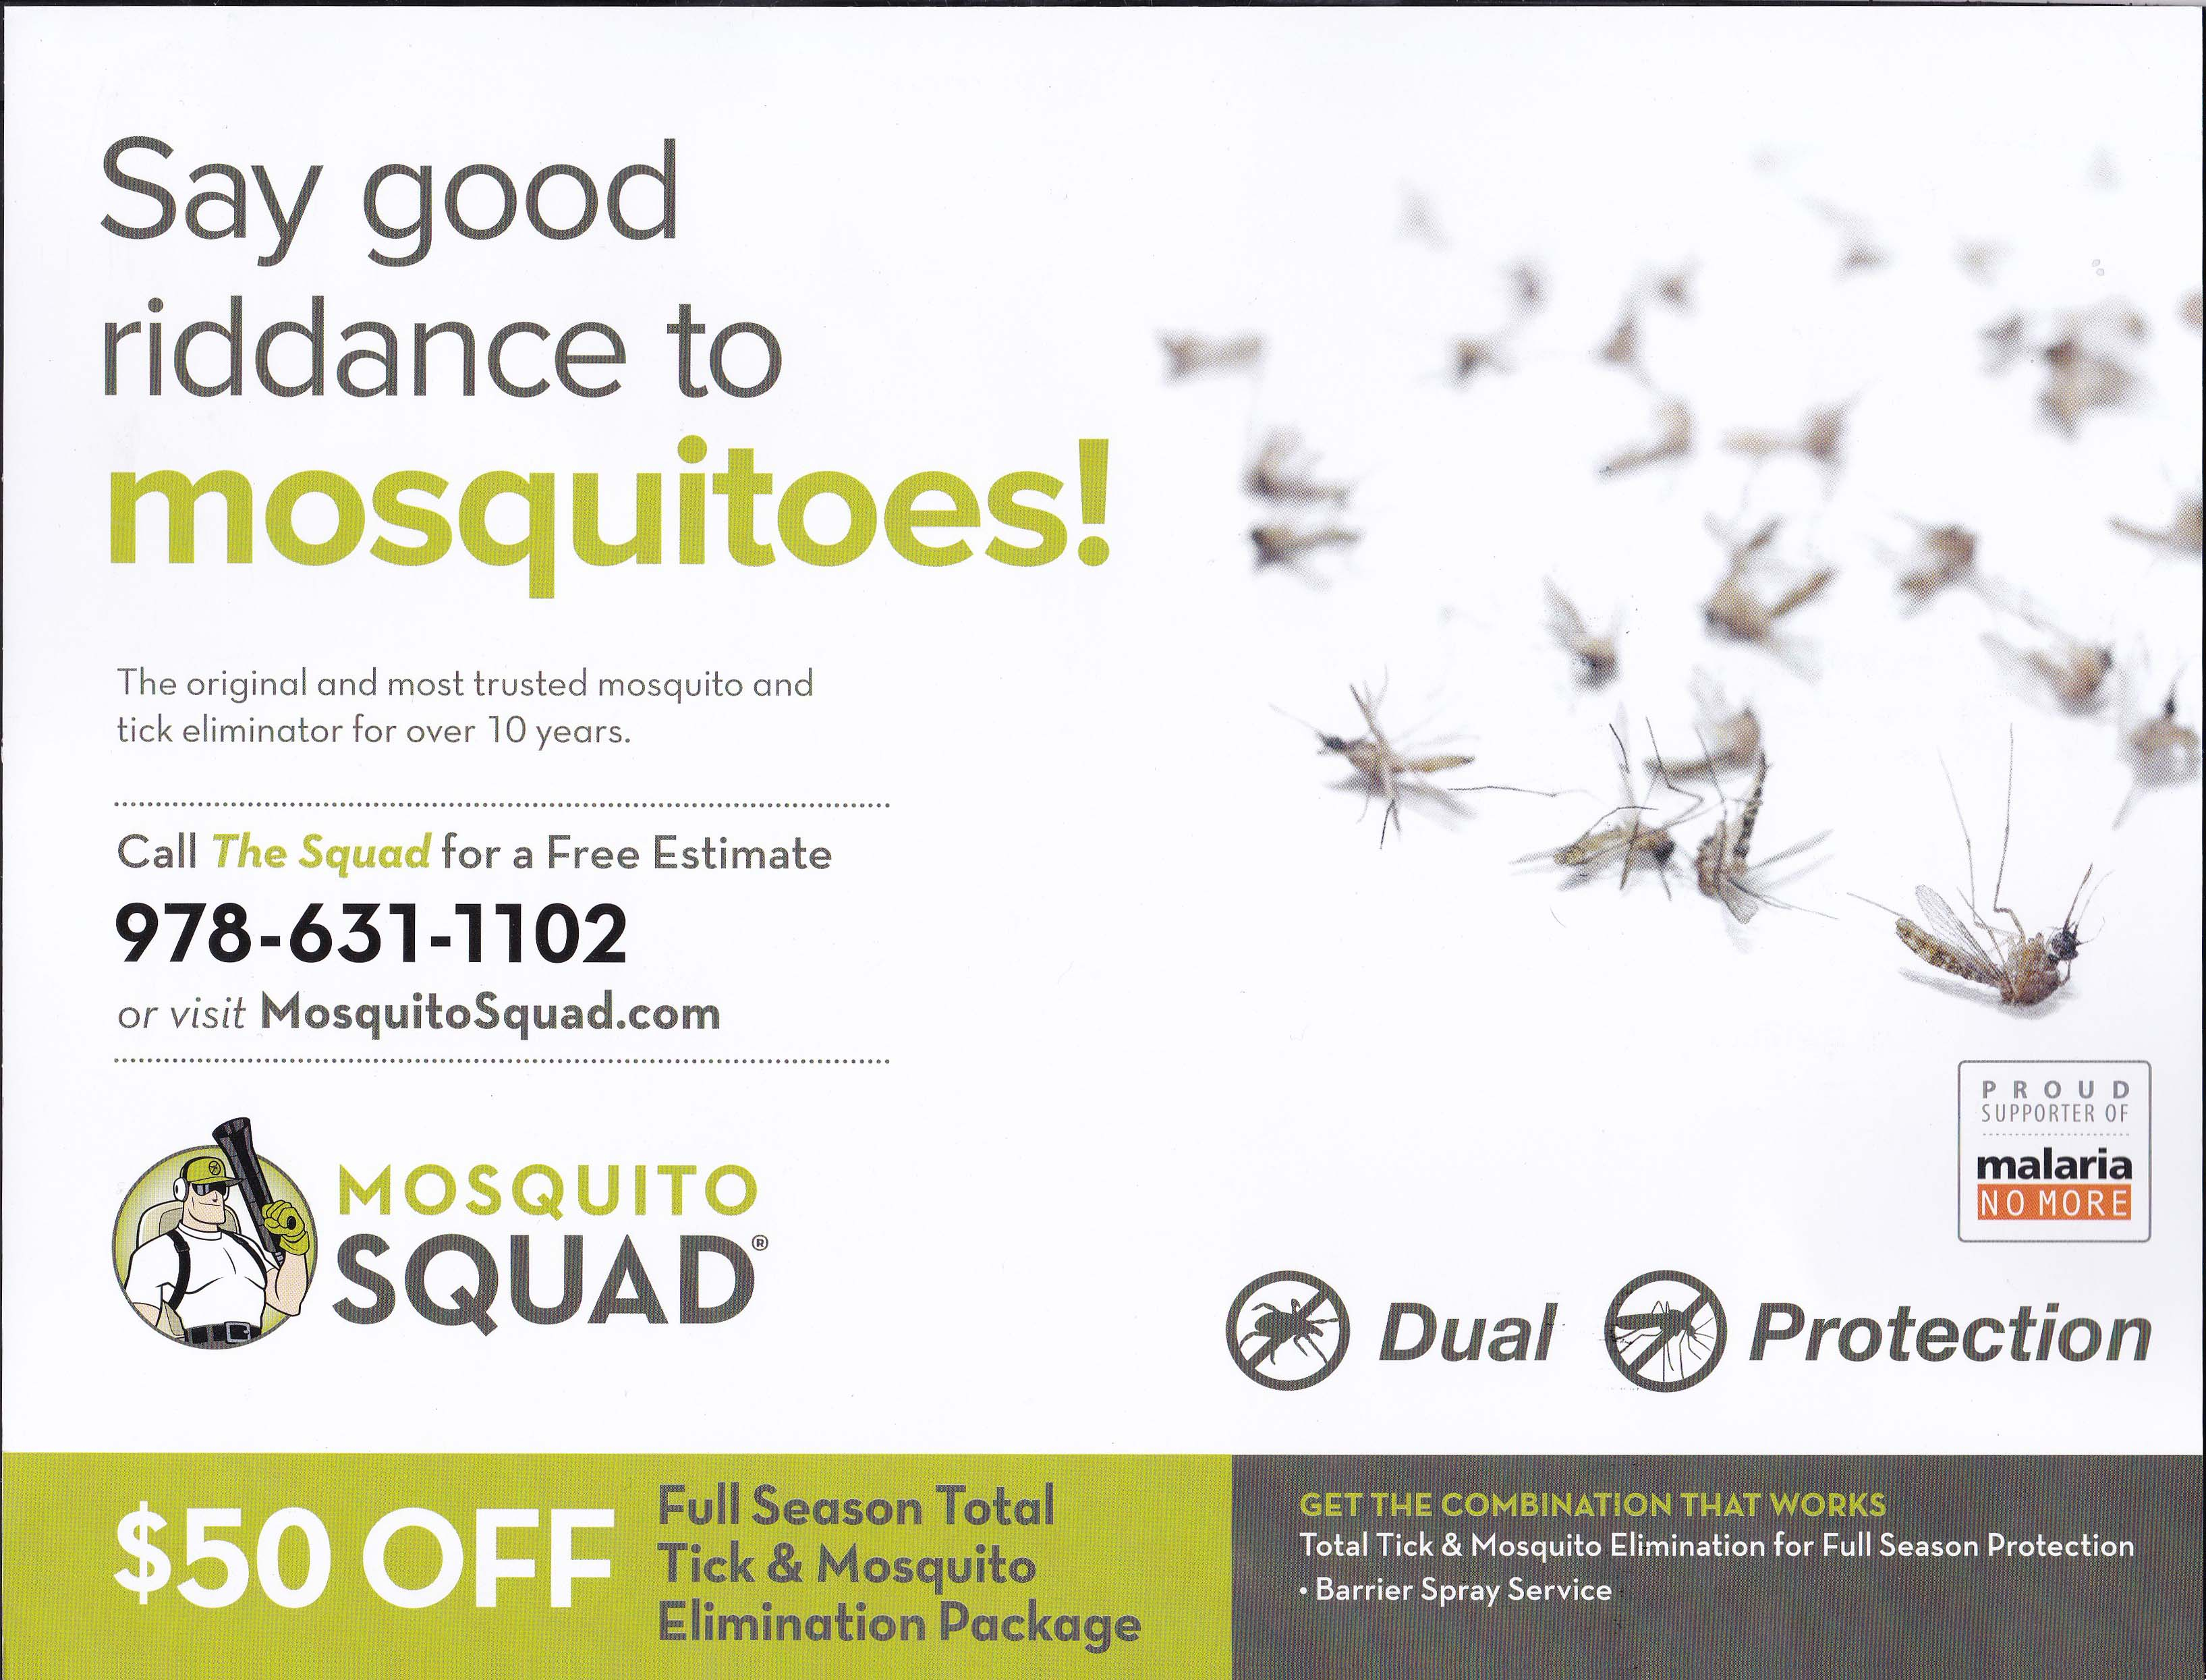 Mosquito Squad - Summer 2017 - Mailing 2 (Mid May) - Side 1